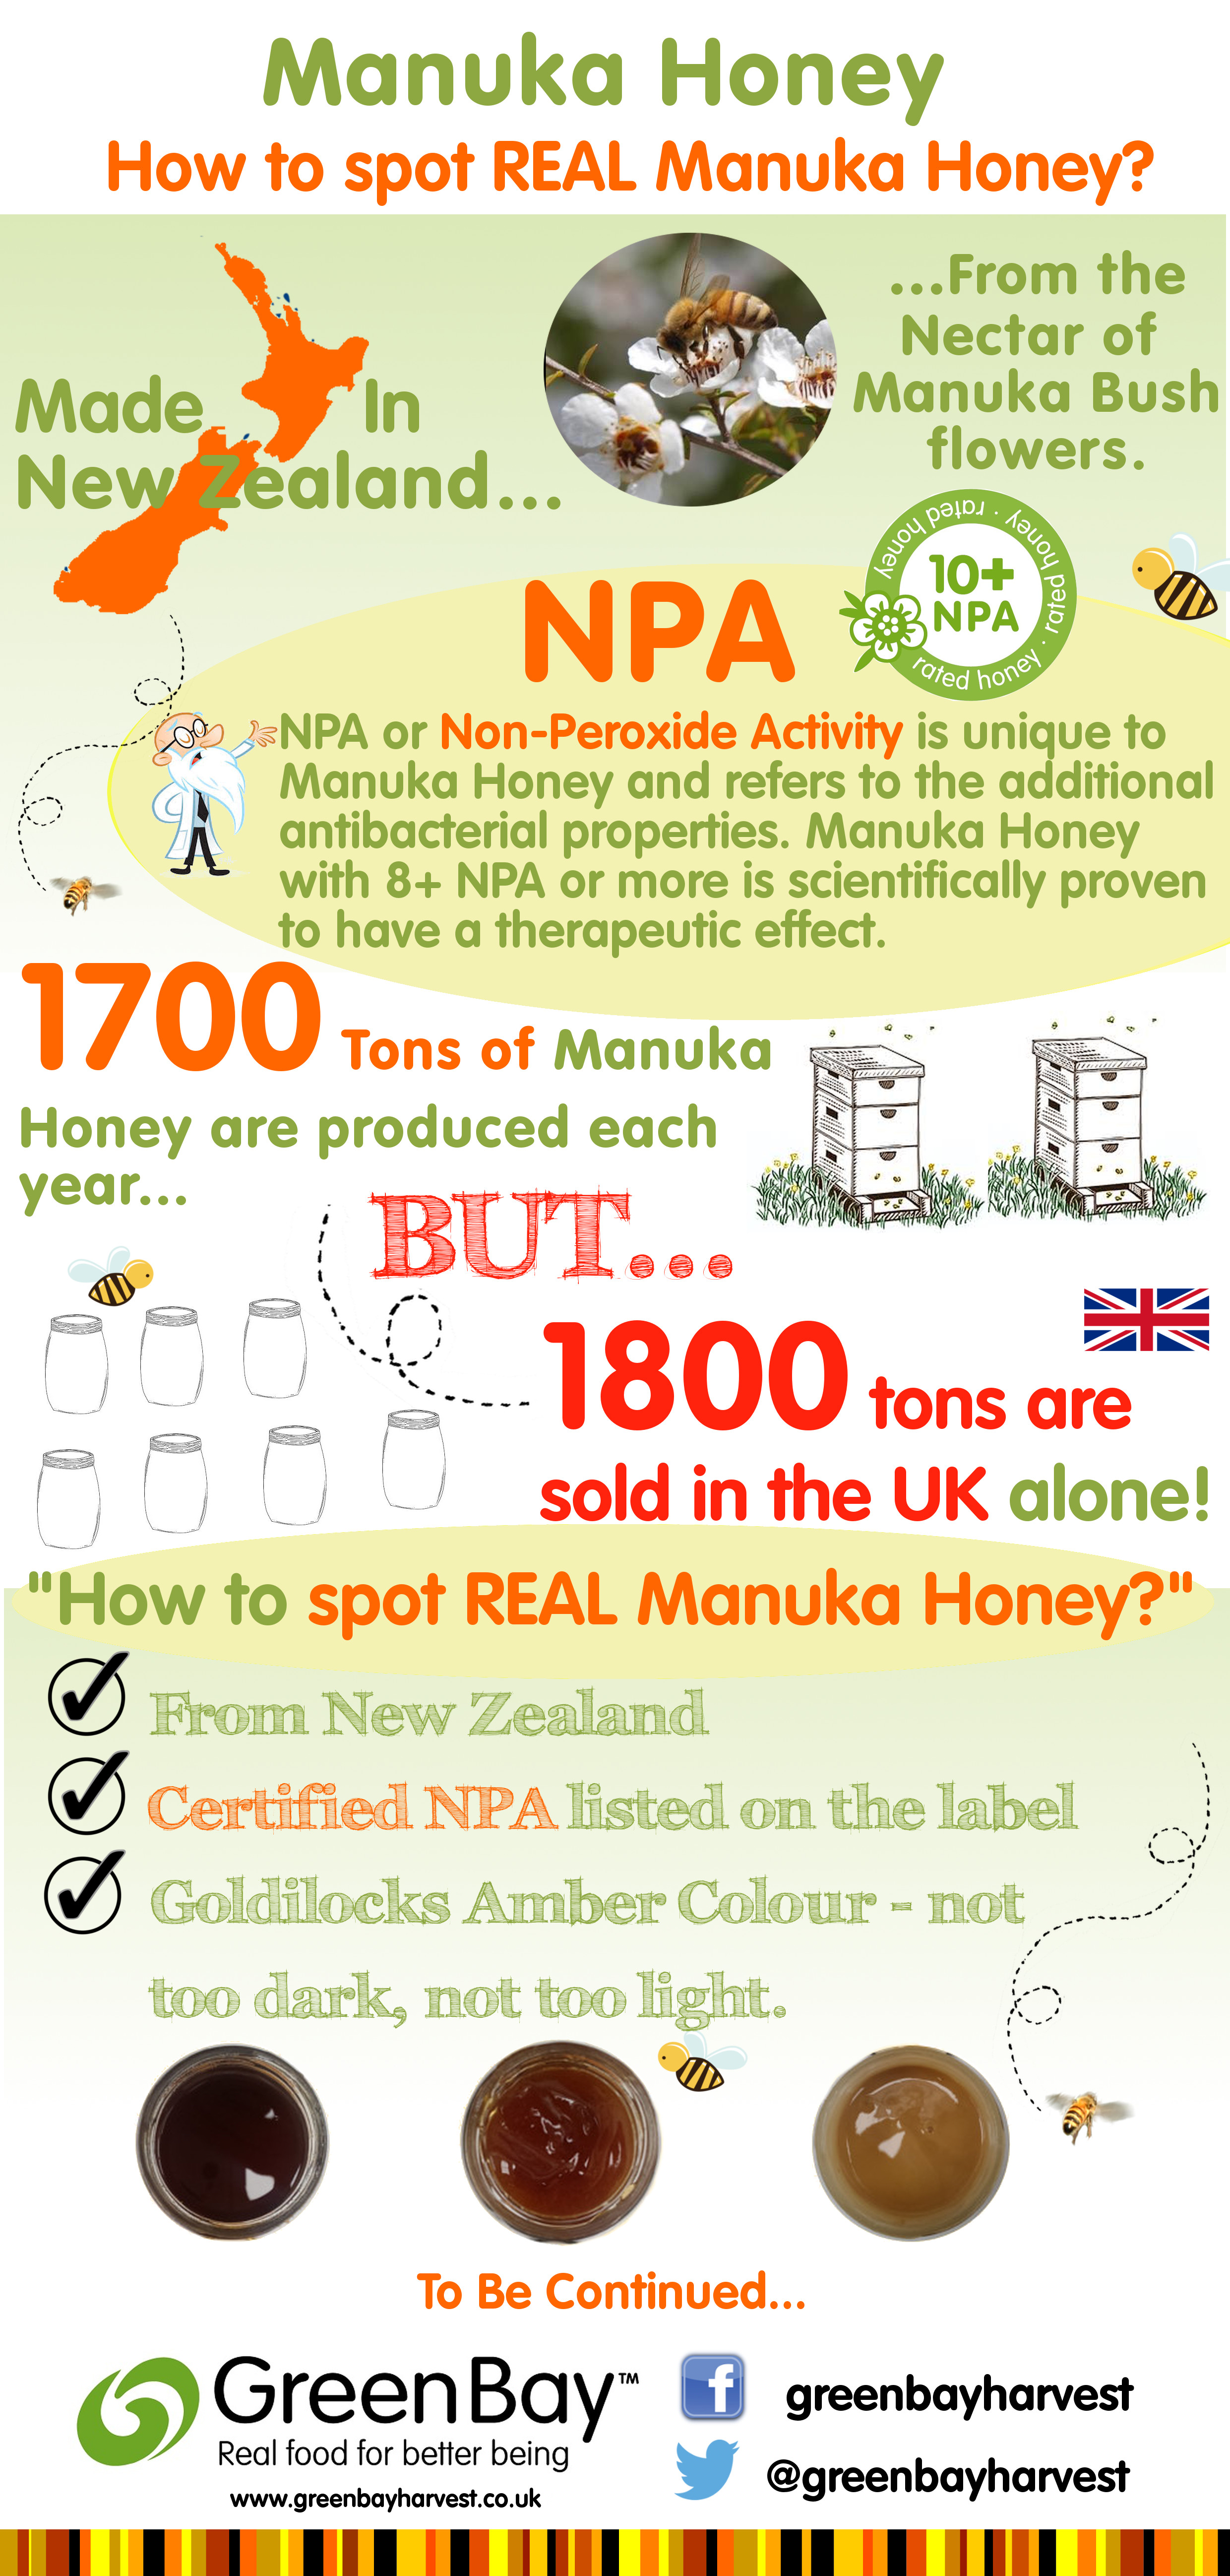 http://greenbayharvest.co.uk/ps/img/cms/infographic_manuka_honey.jpg